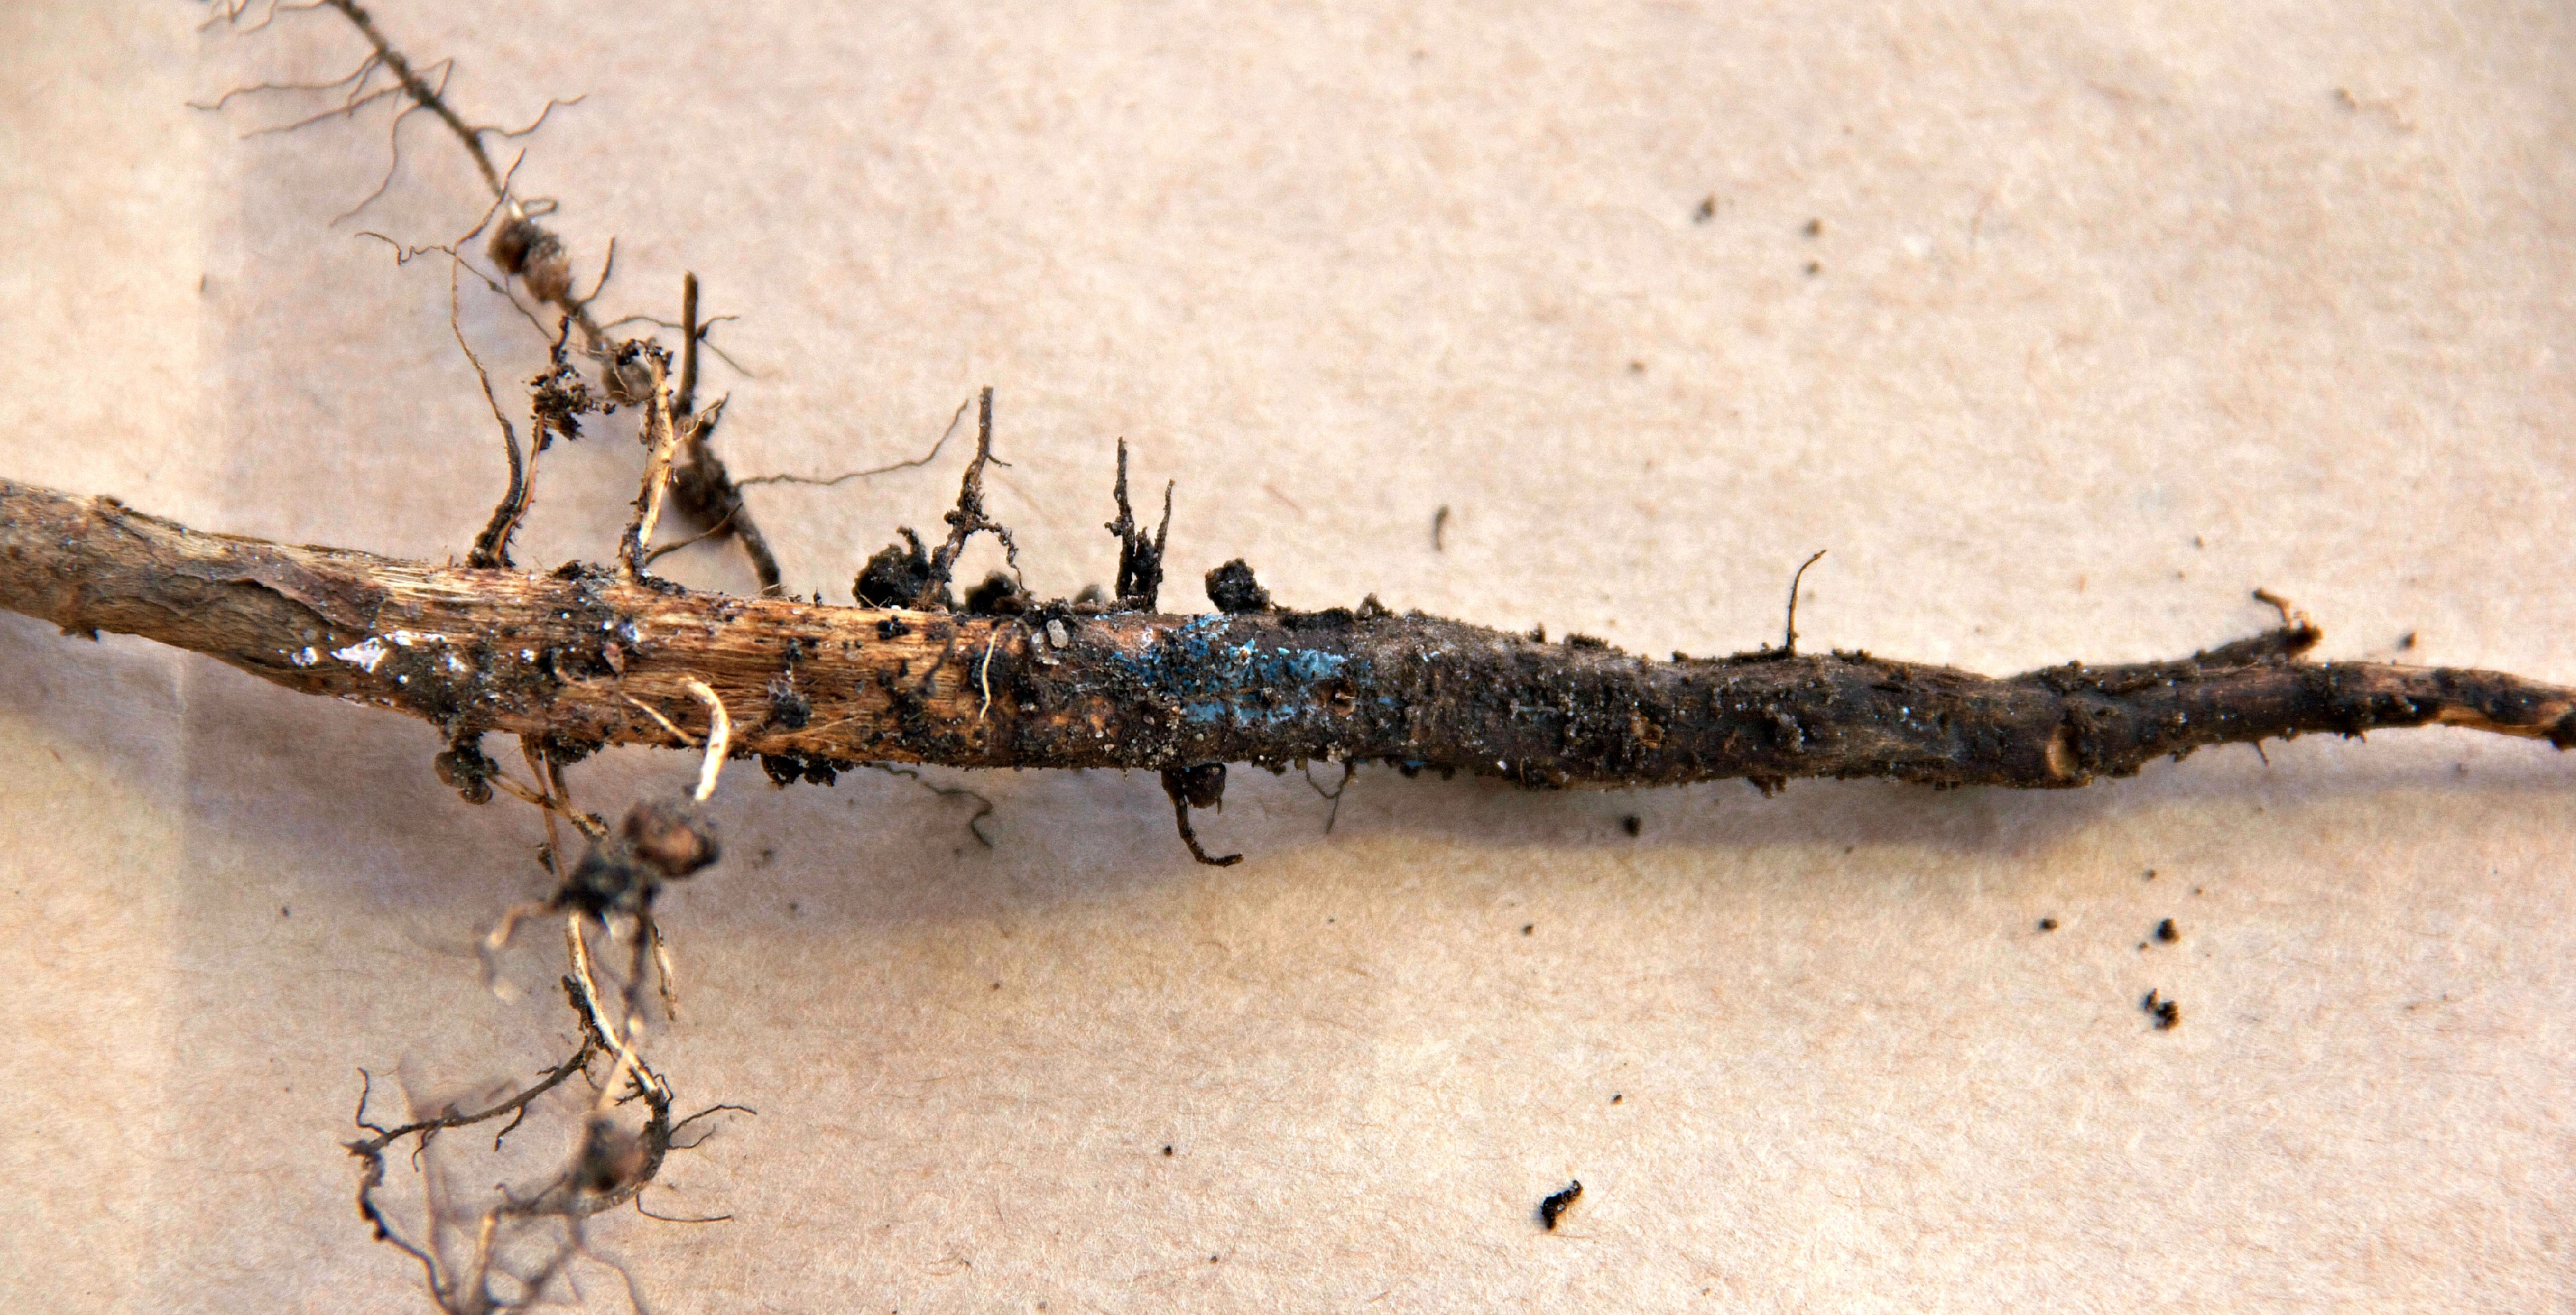 Bluish fungal growth may be seen on the surface of roots if soil moisture is high.